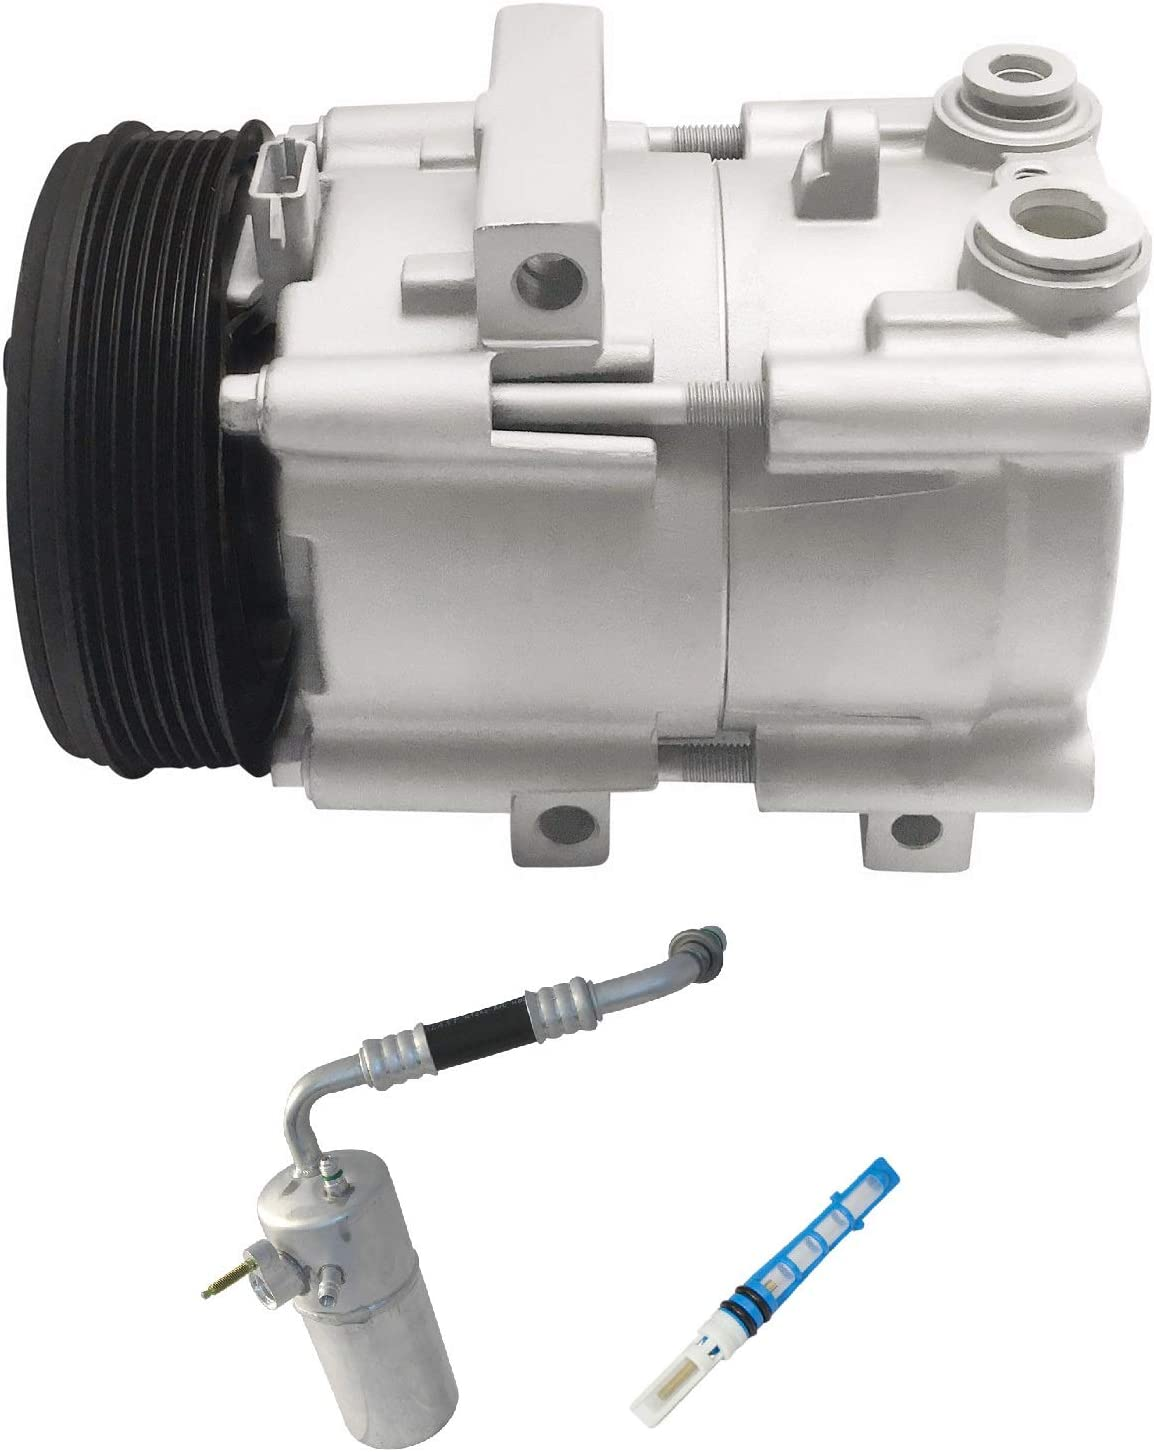 RYC Remanufactured AC Compressor Kit KT DA16